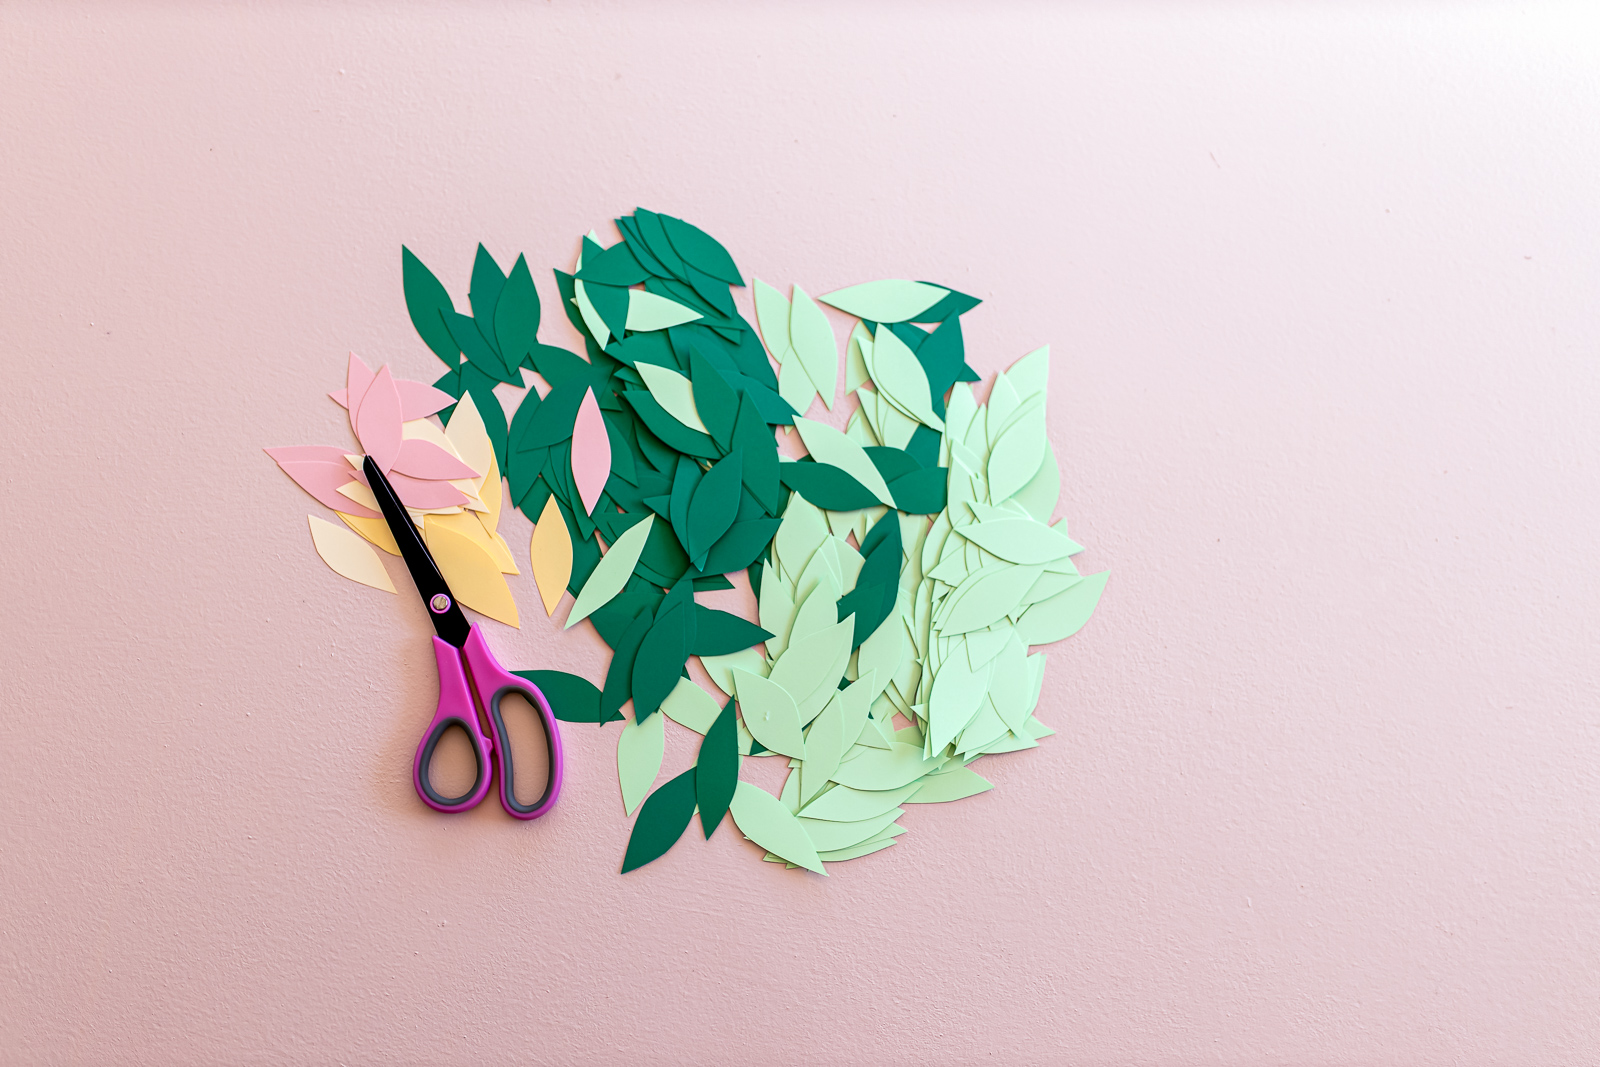 DIY_Paper_Leaf_Baby_Mobile_by_Clever_Poppy_cutting_leaves.jpg